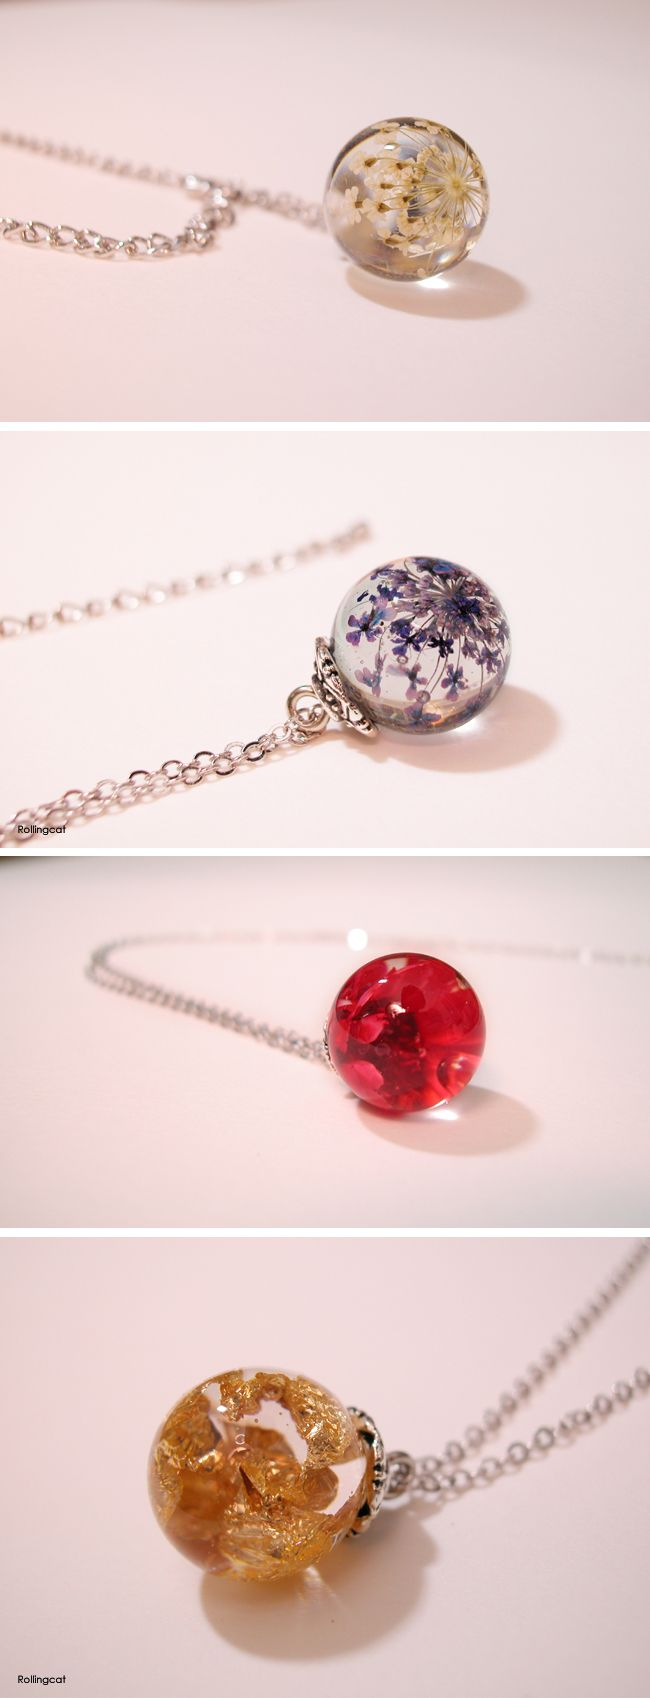 resin necklaces - Flower and Gold Leaf